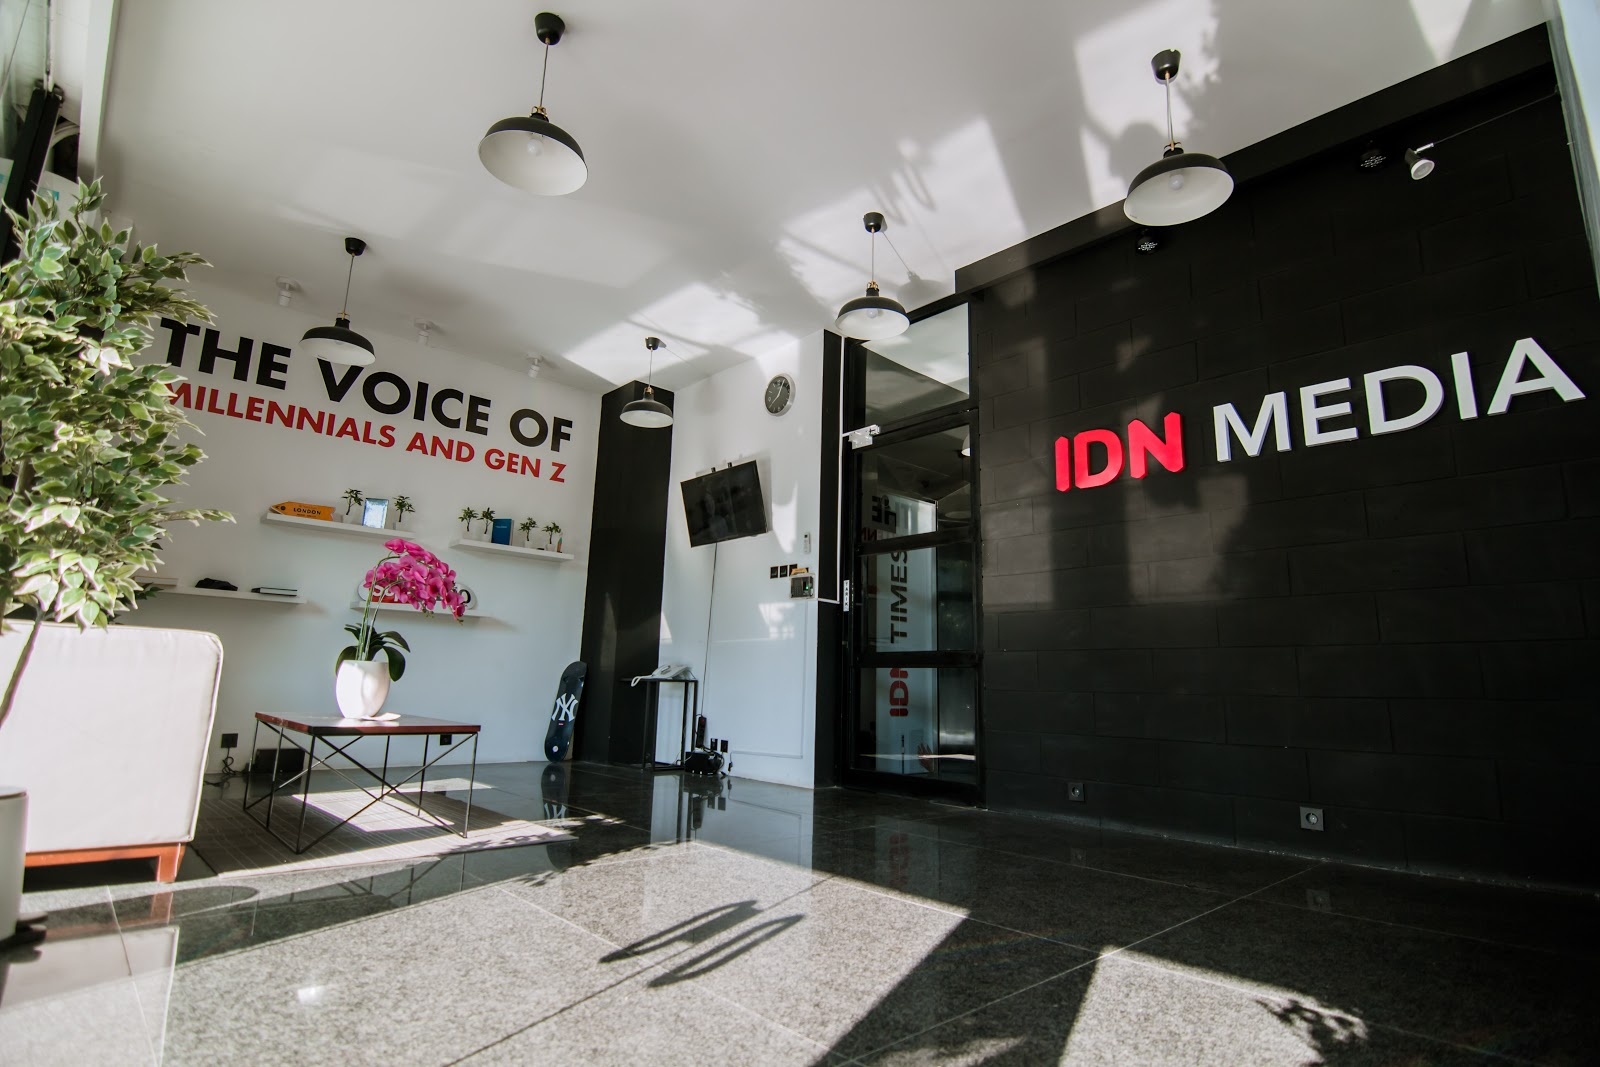 IDN Media Secures a Series-C Investment In a Mission to Become the Voice of Millennials and Gen Z